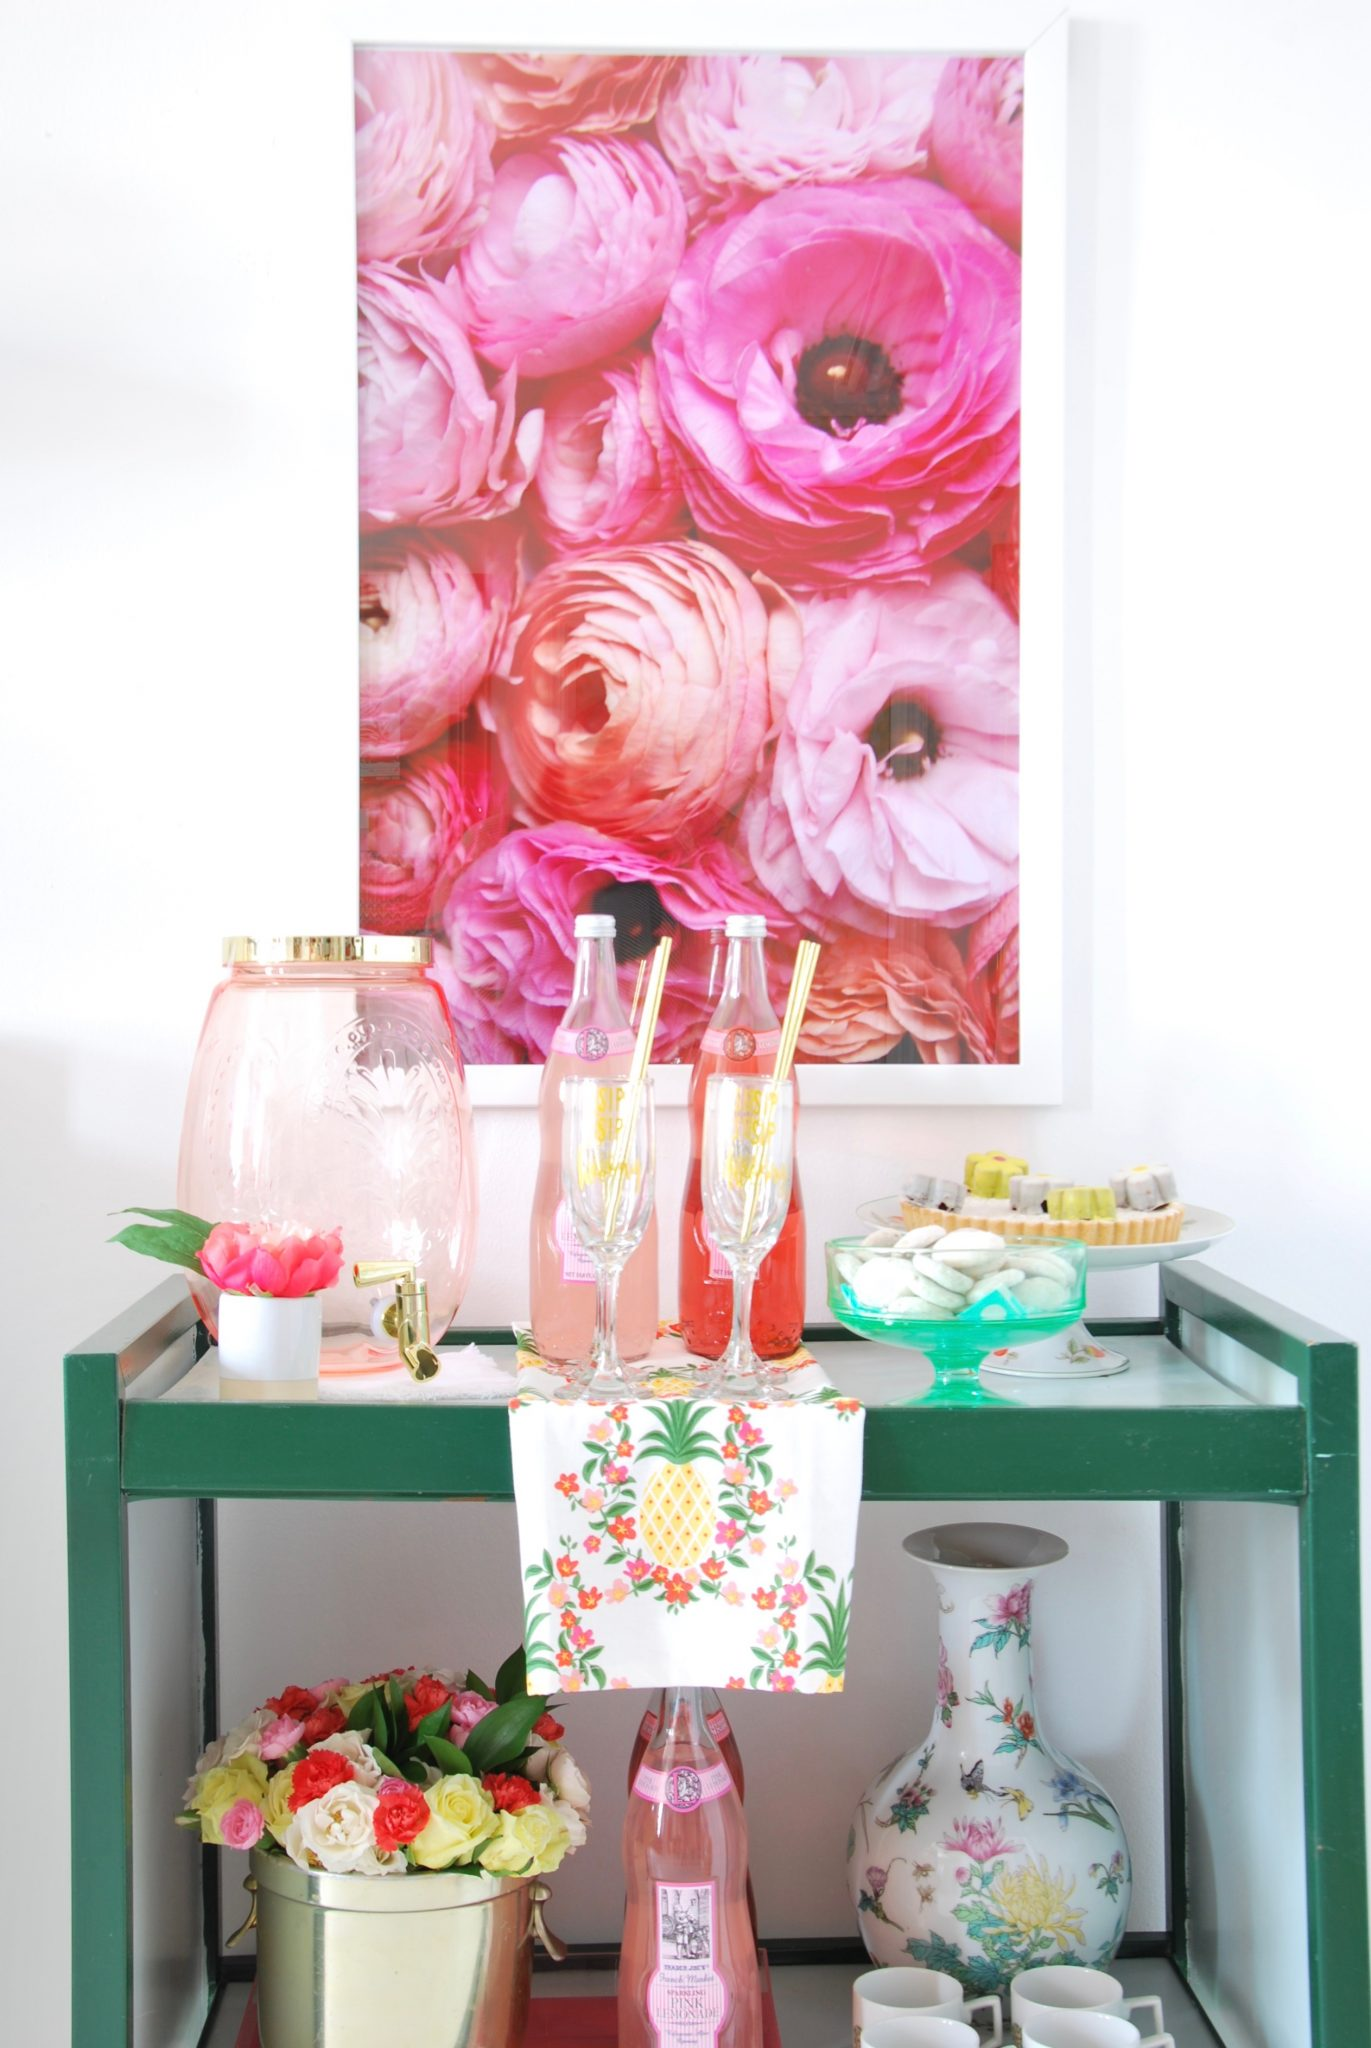 Eclectic Home Tour of Effortless Style Interiors - this is a color lovers dream home! kellyelko.com #barcart #colorlovers #interiordecor #peonies #art #interiordesign